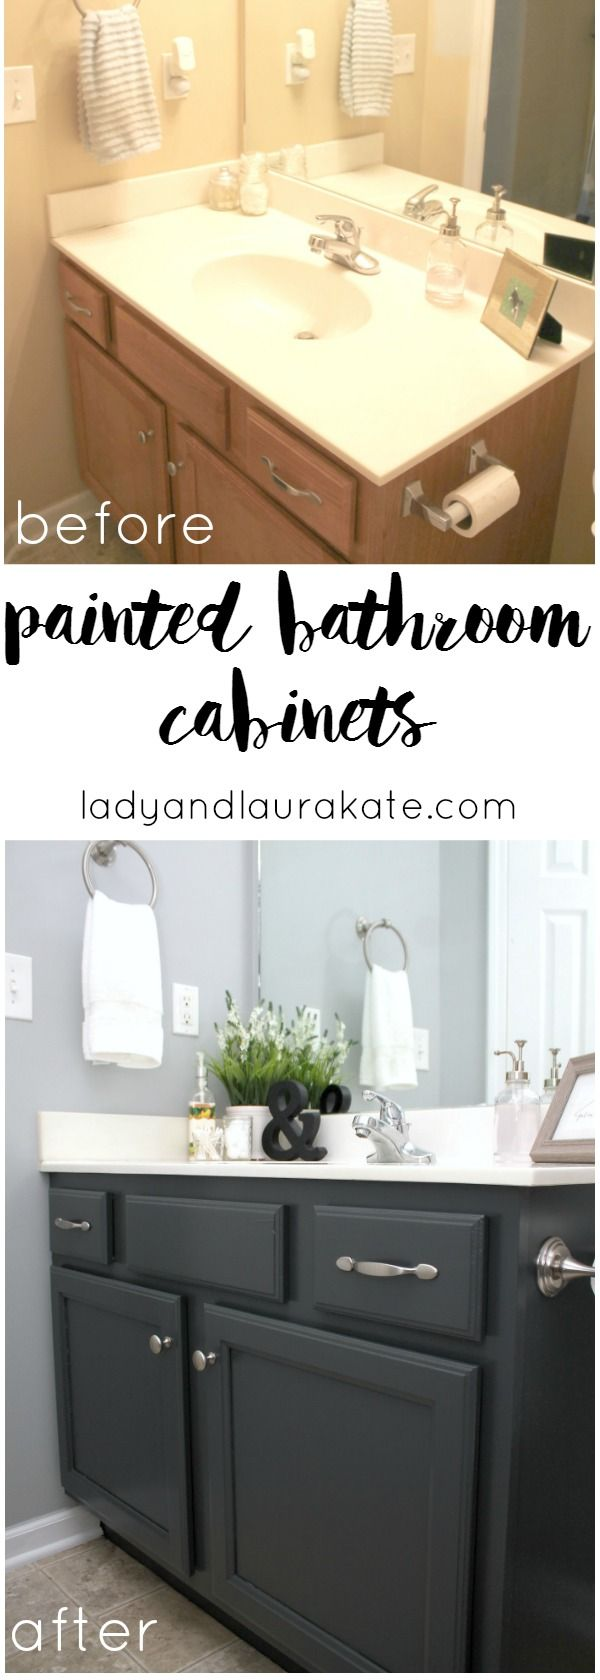 Easy Way to Paint your Bathroom Cabinets | Ideas for my future home ...